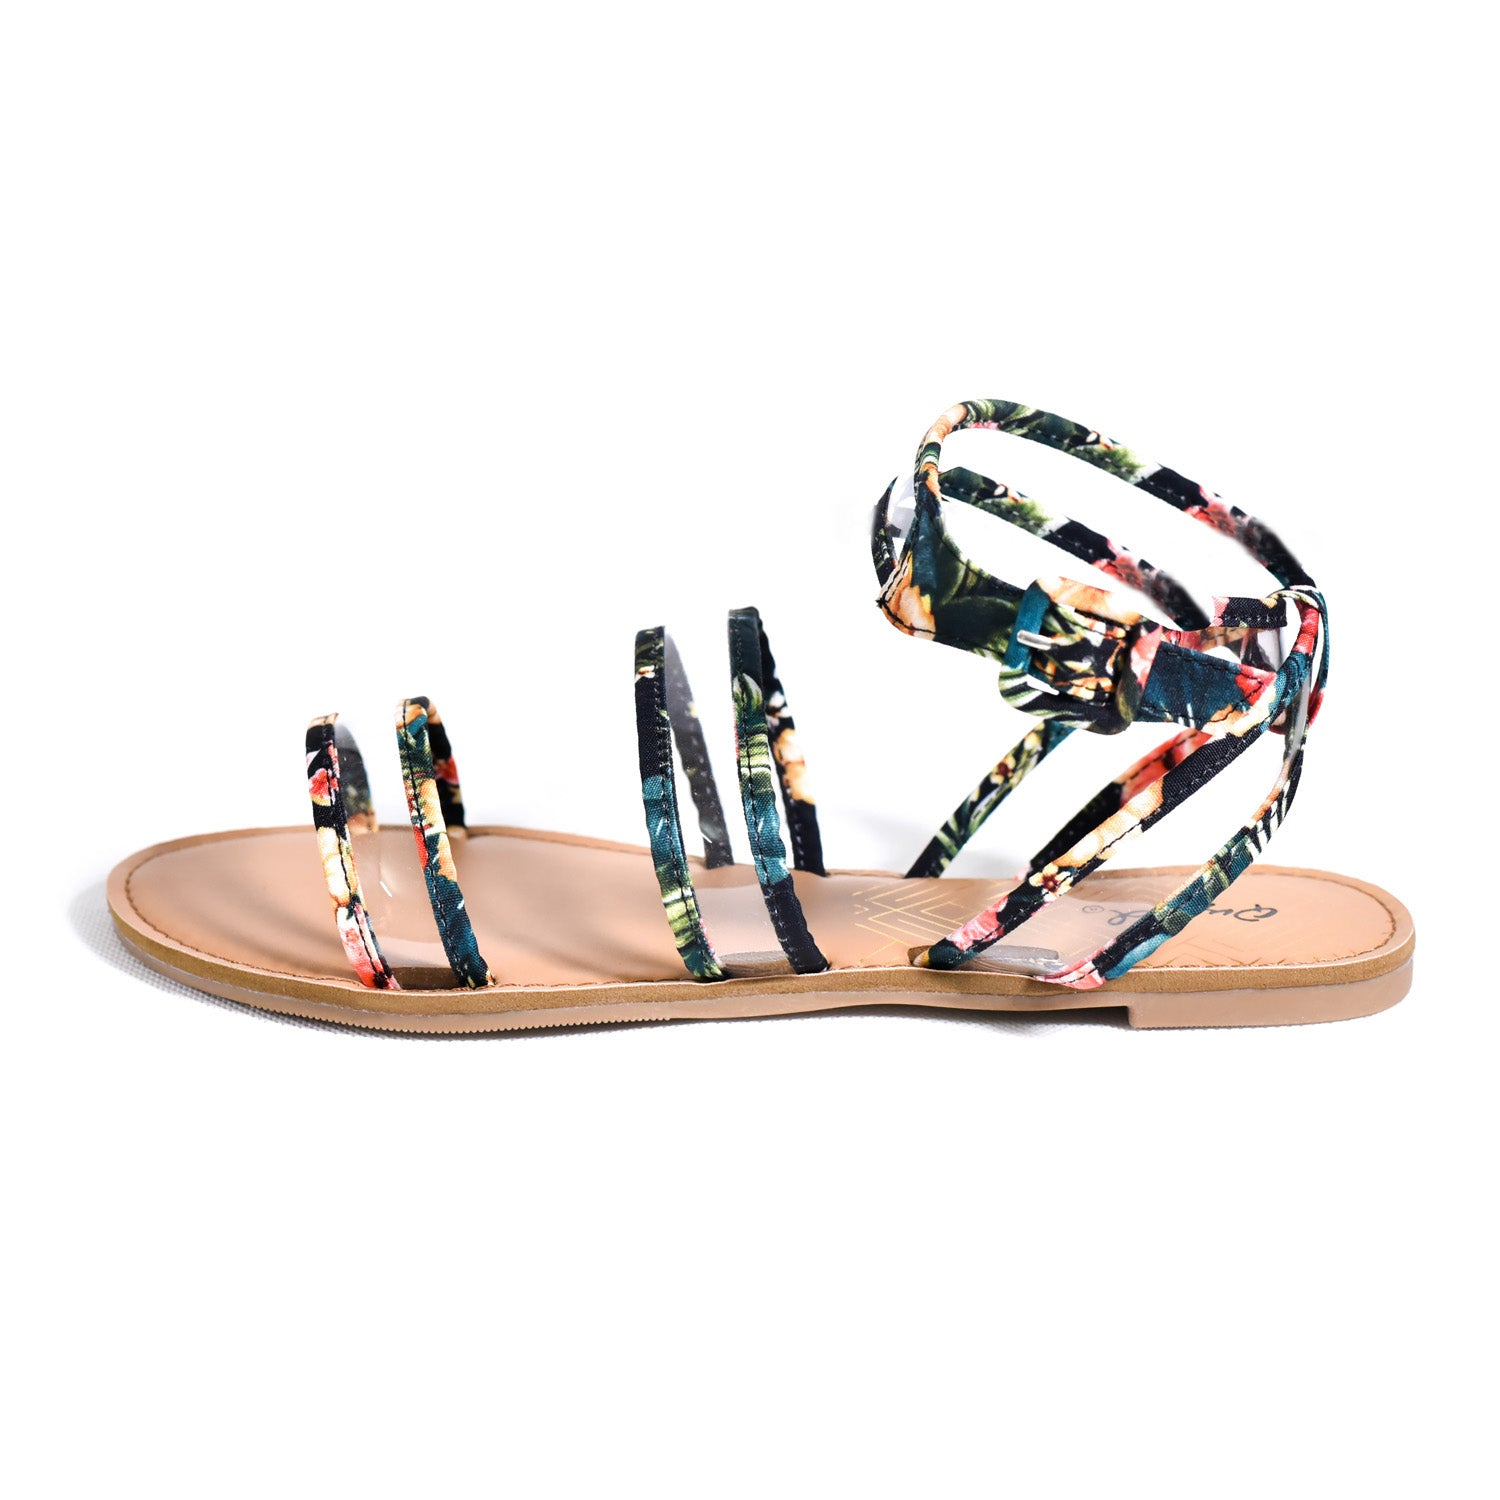 Flat Sandal multi colored with clear wide belts